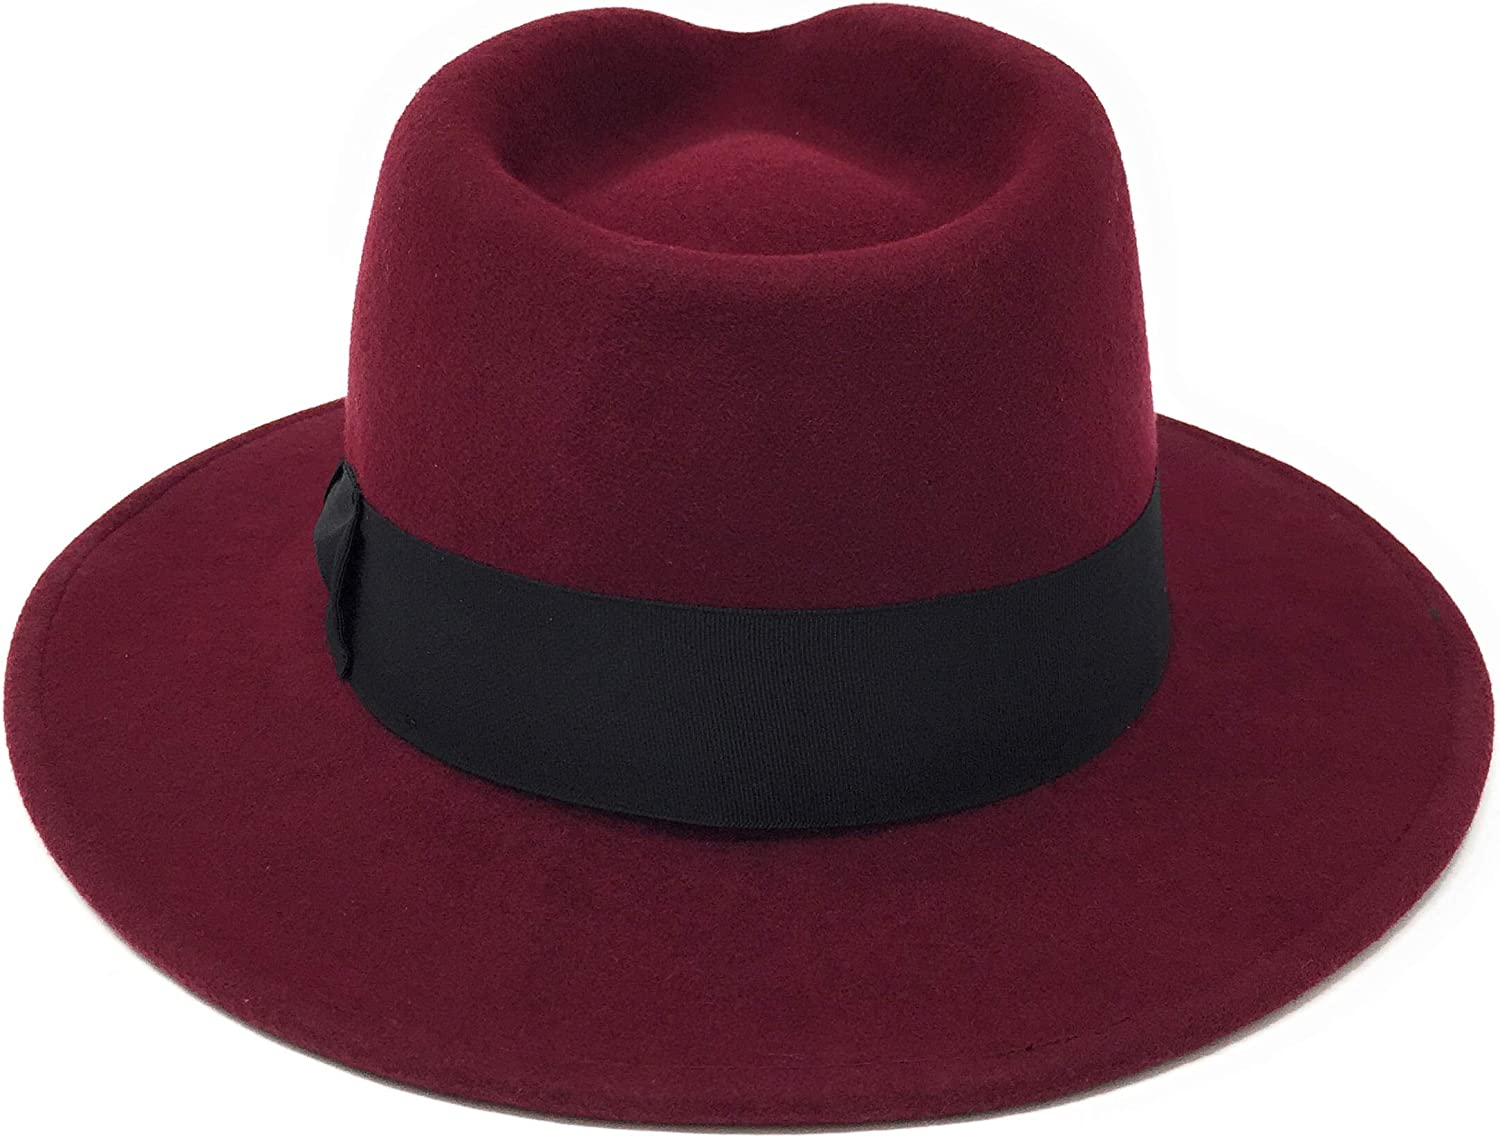 Medium 2XL Large Mens Handmade Wool Felt Indiana Style Crushable Fedora Hat Indy Fabric Protector Treated Small XL